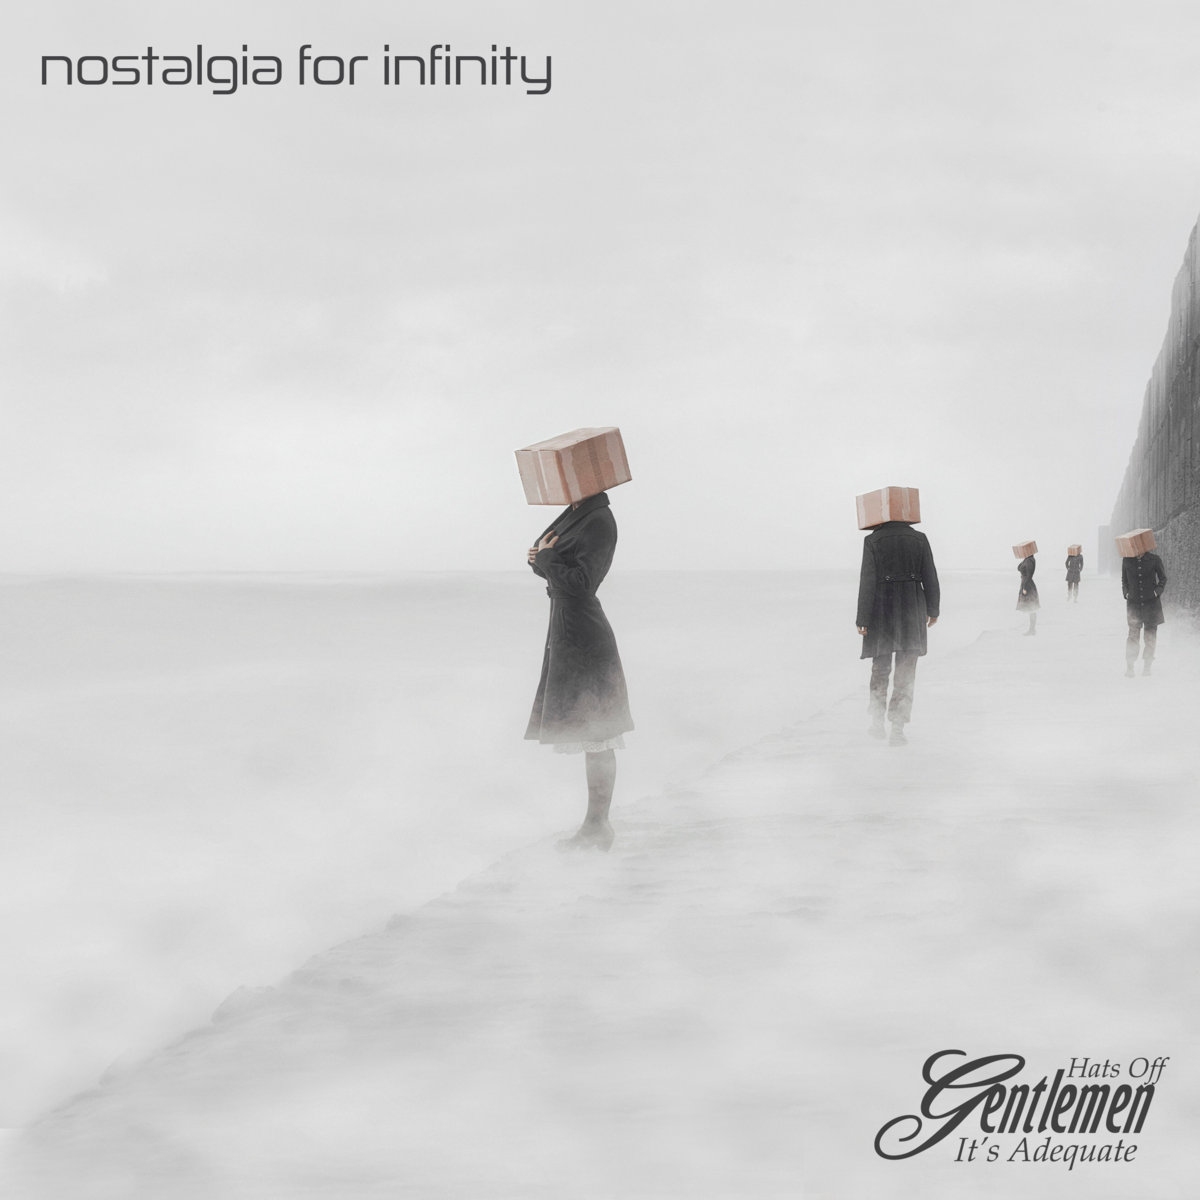 Hats Off Gentlemen It's Adequate: Nostalgia for Infinity